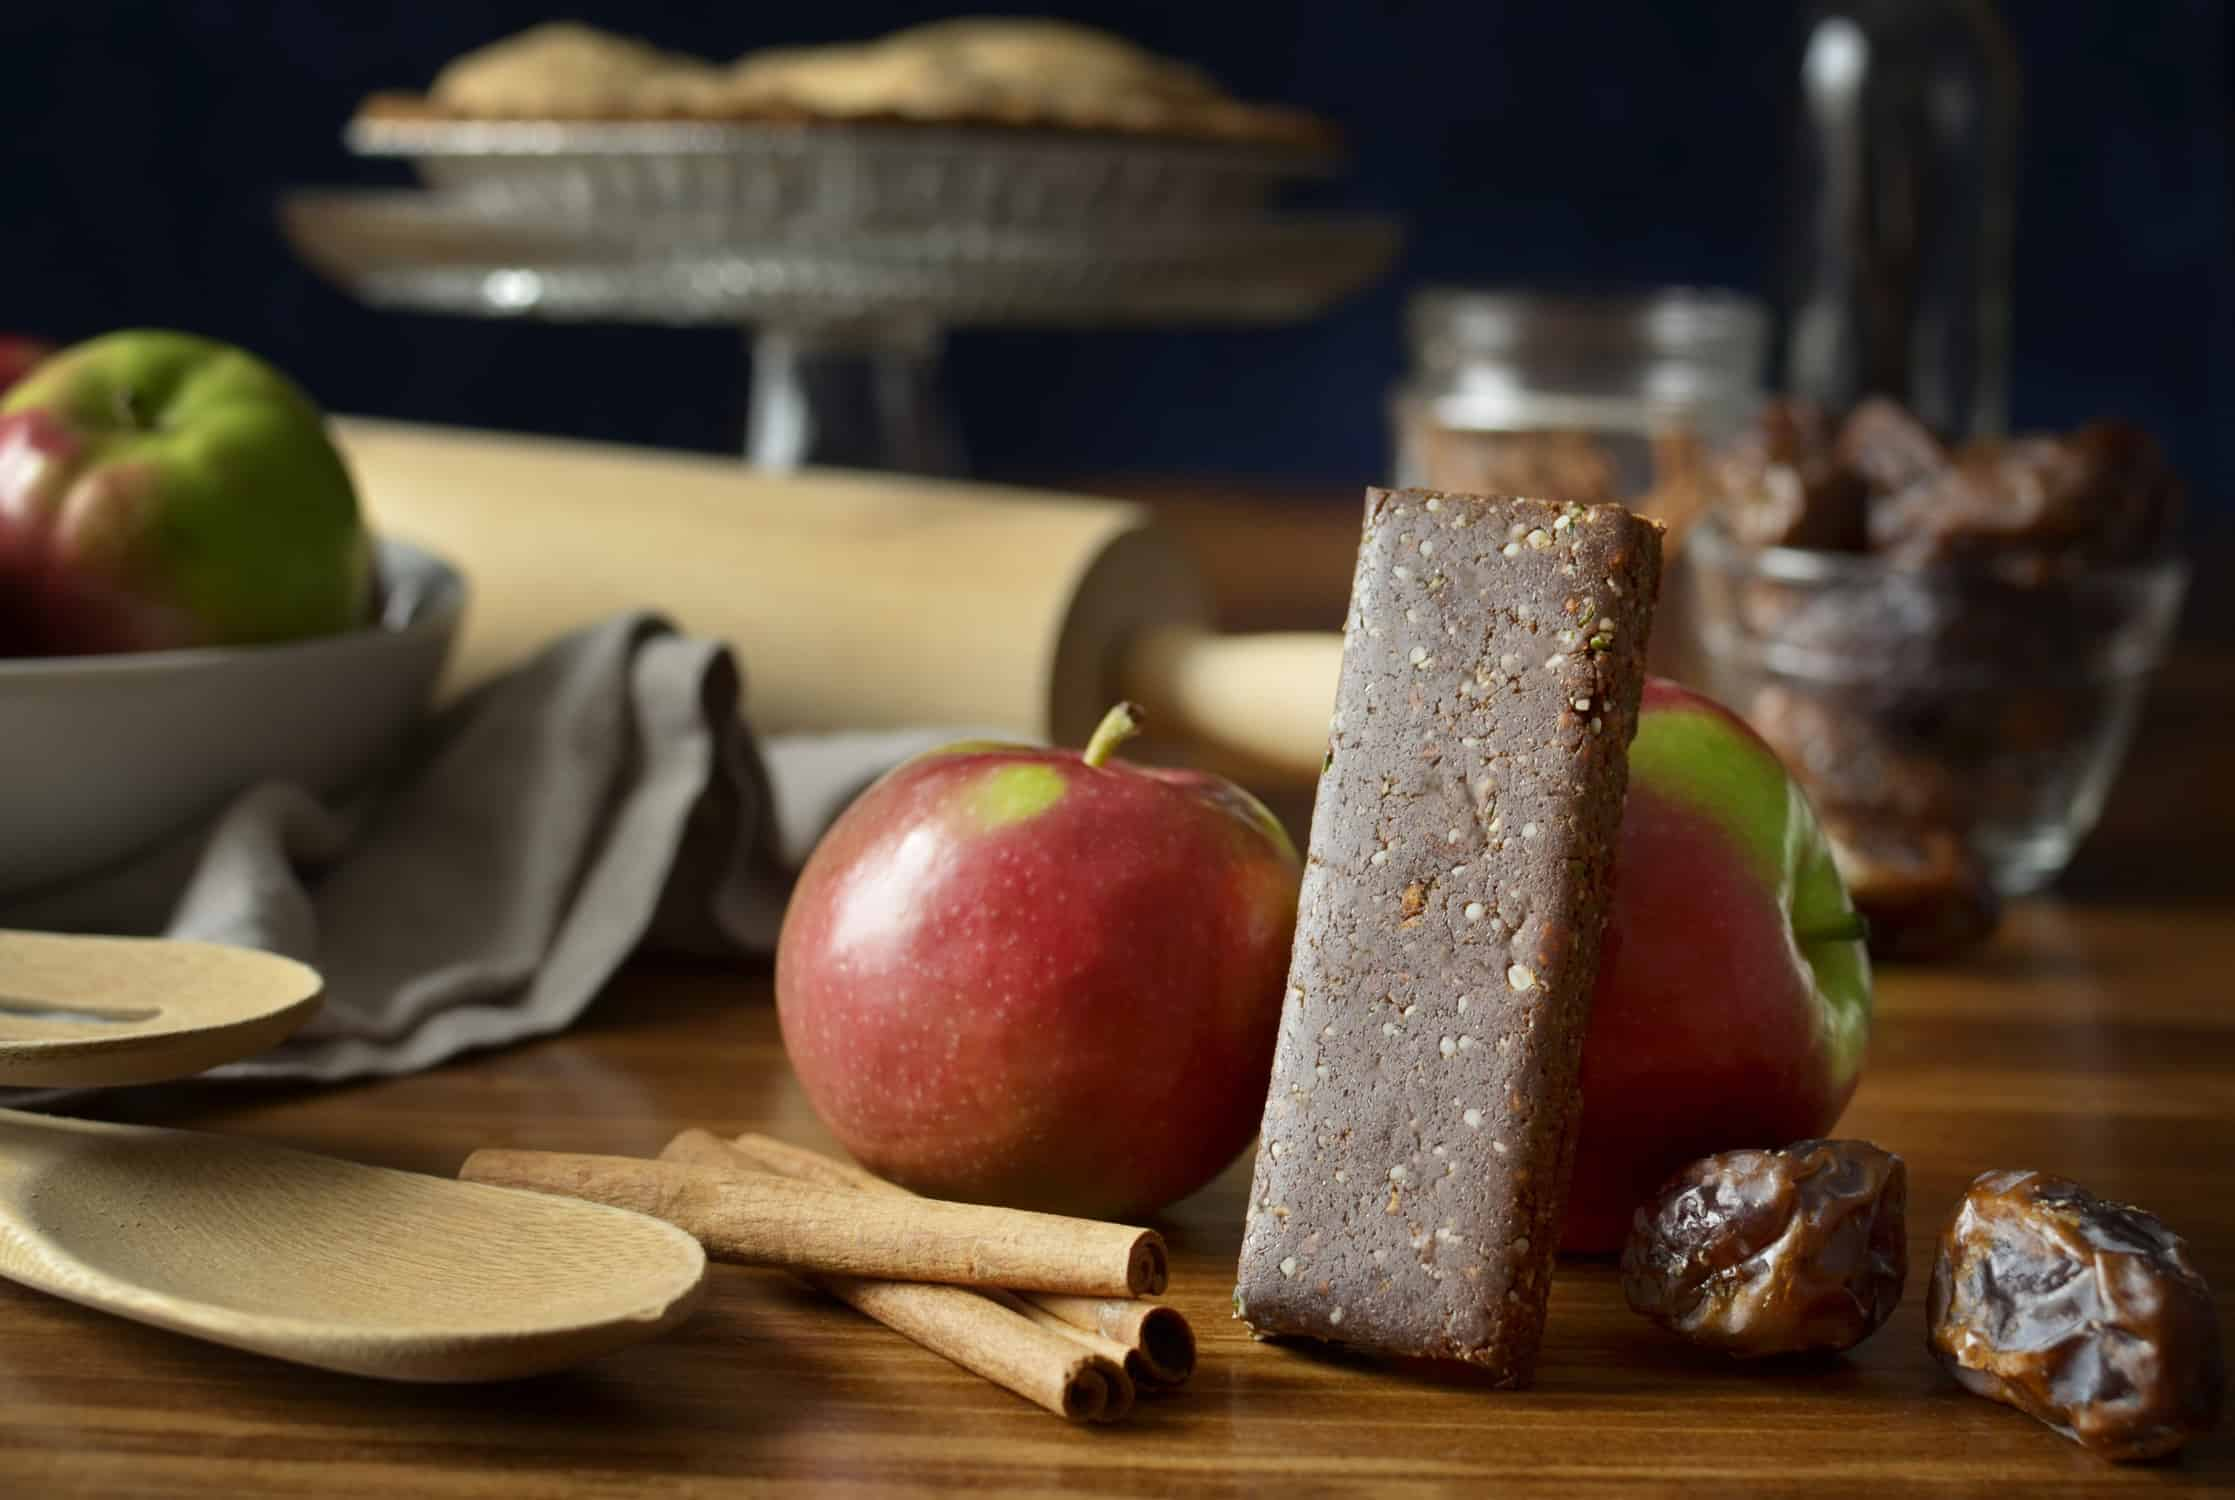 Fit Cricket Protein Bar leaning on an apple